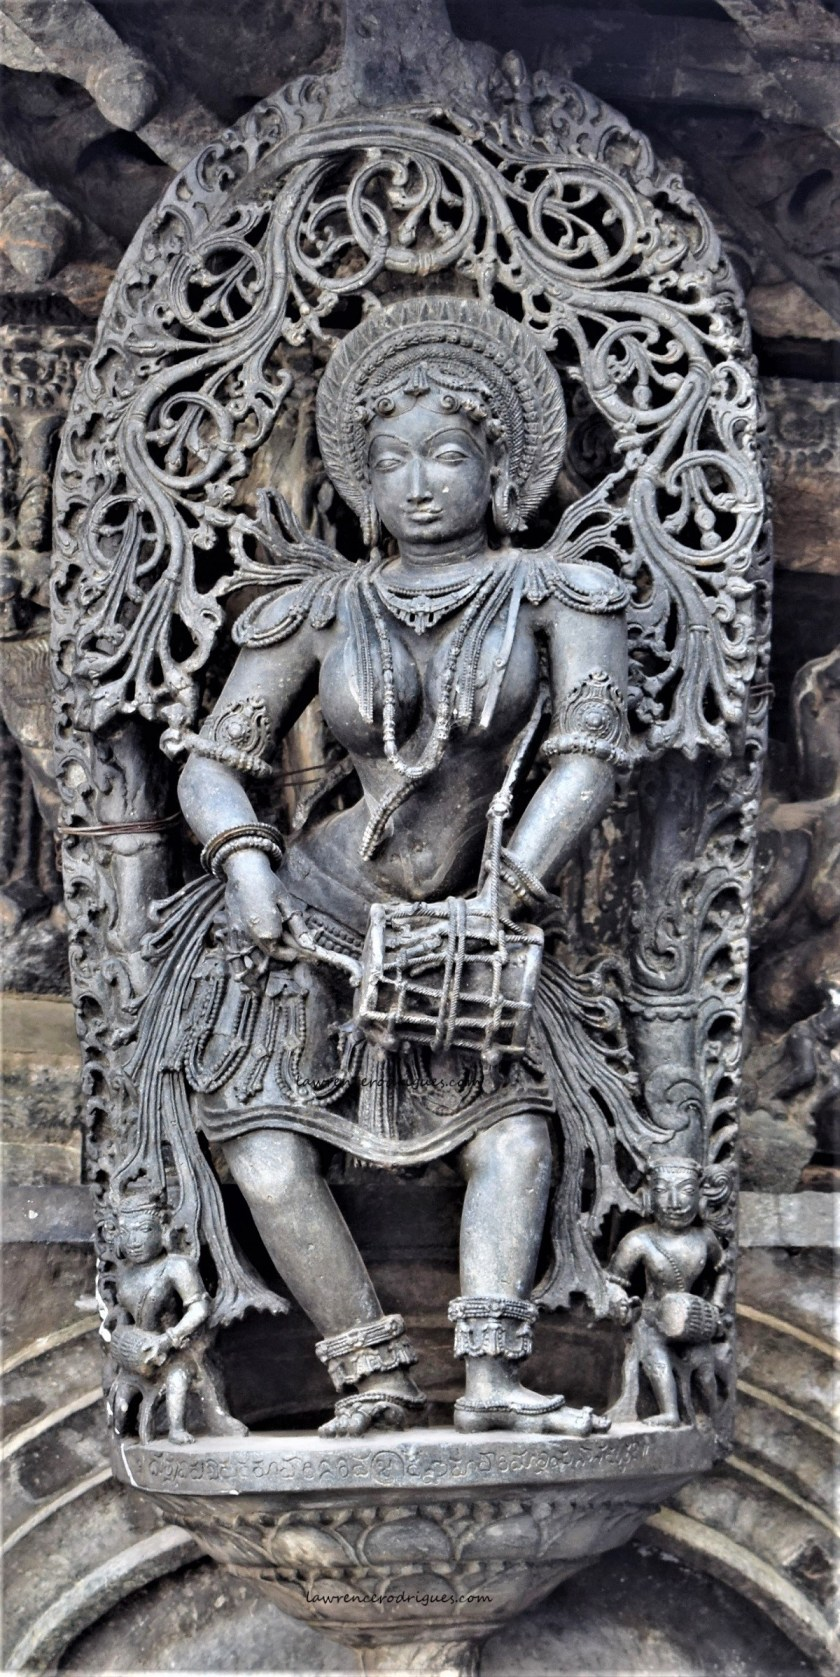 Belur Chennakeshava Temple -Sculpture of a dolu playing dancer mounted on a pillar on the south side